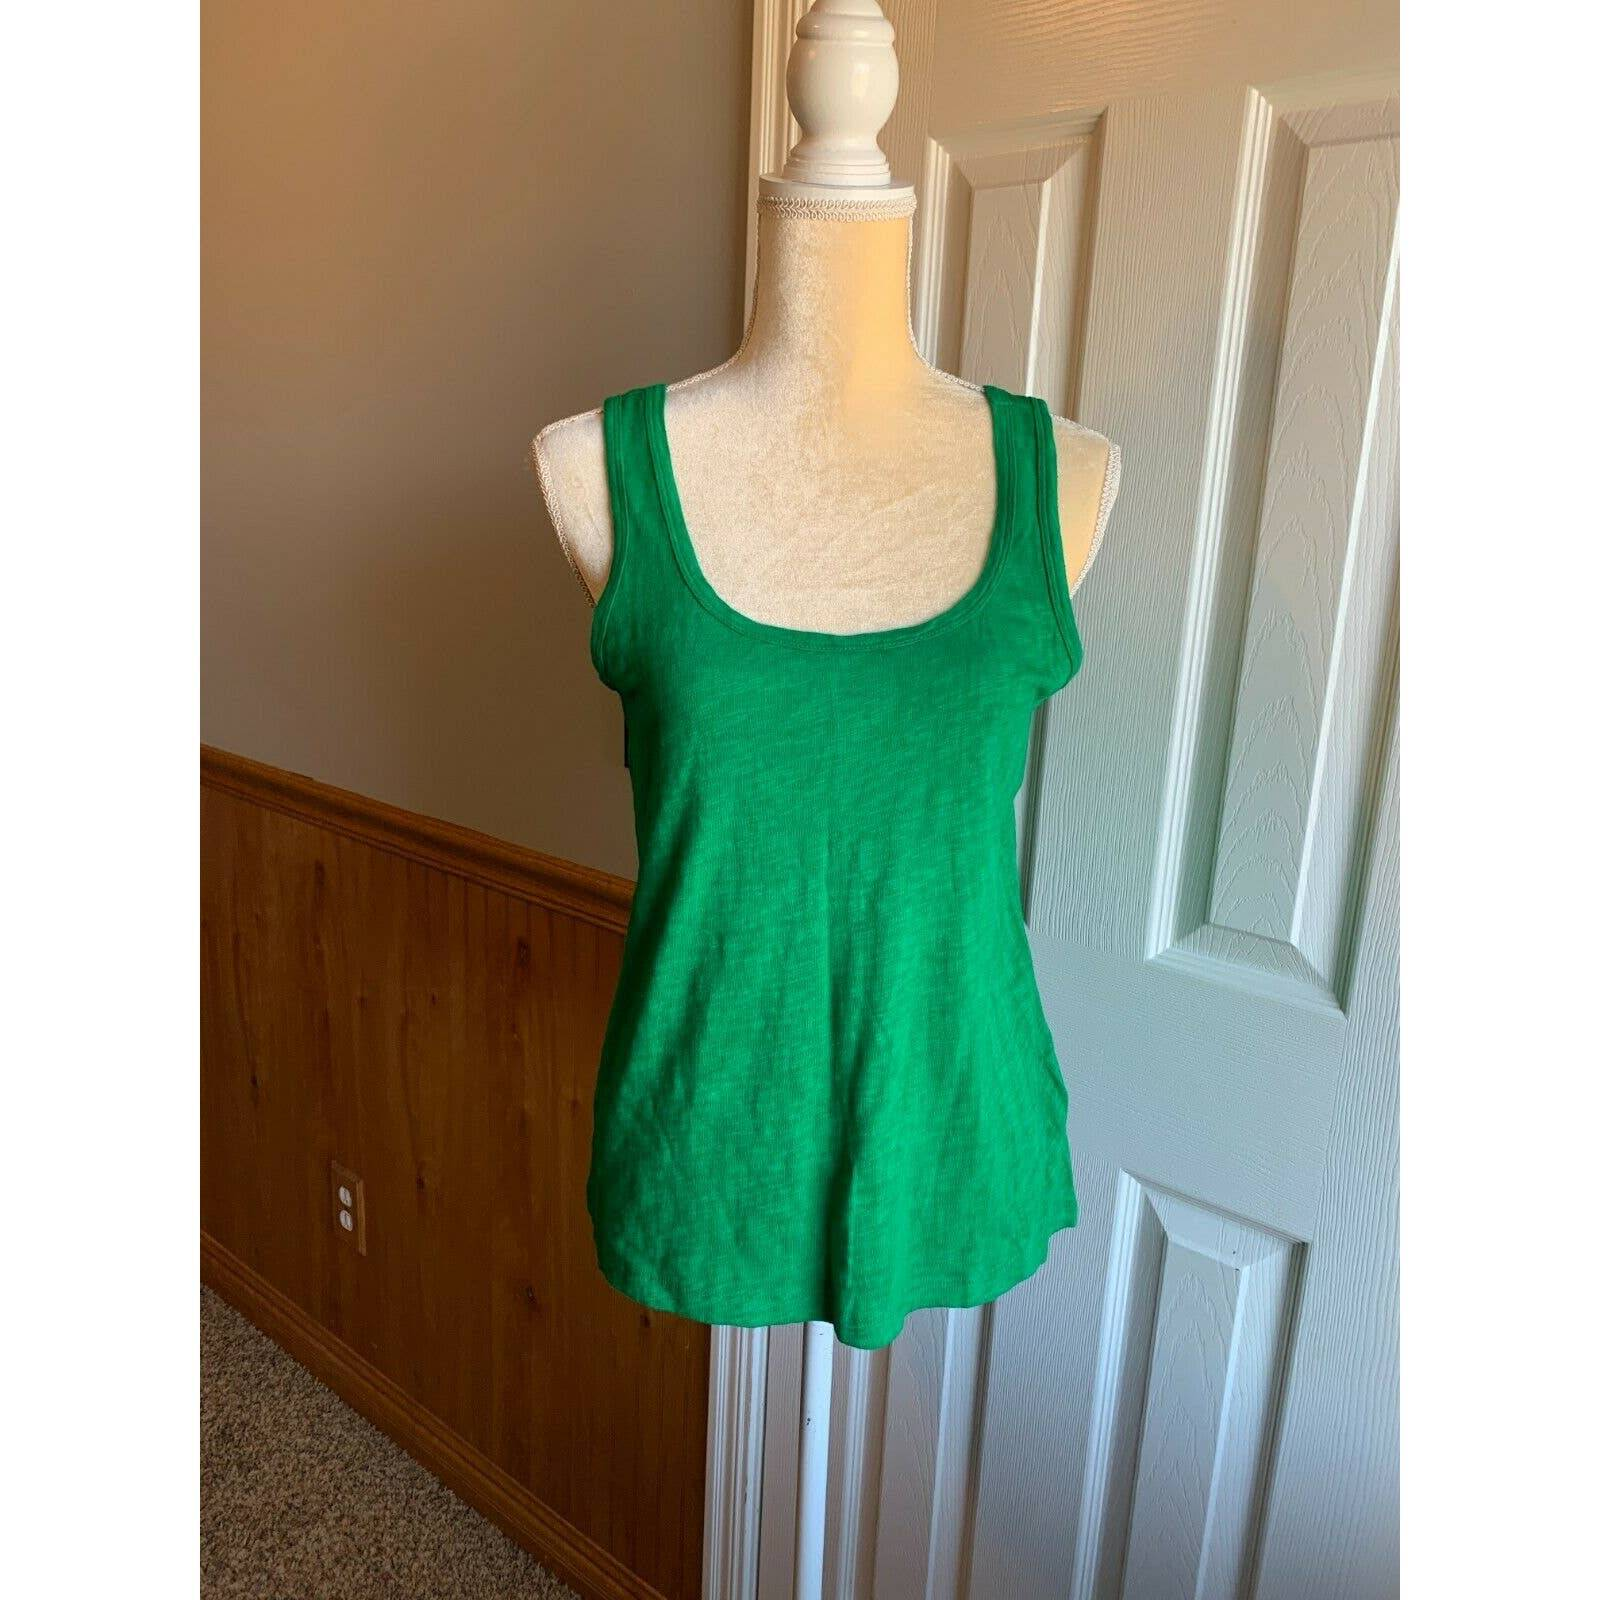 NEW NWT! MADEWELL Hi-Line Green Tank Top